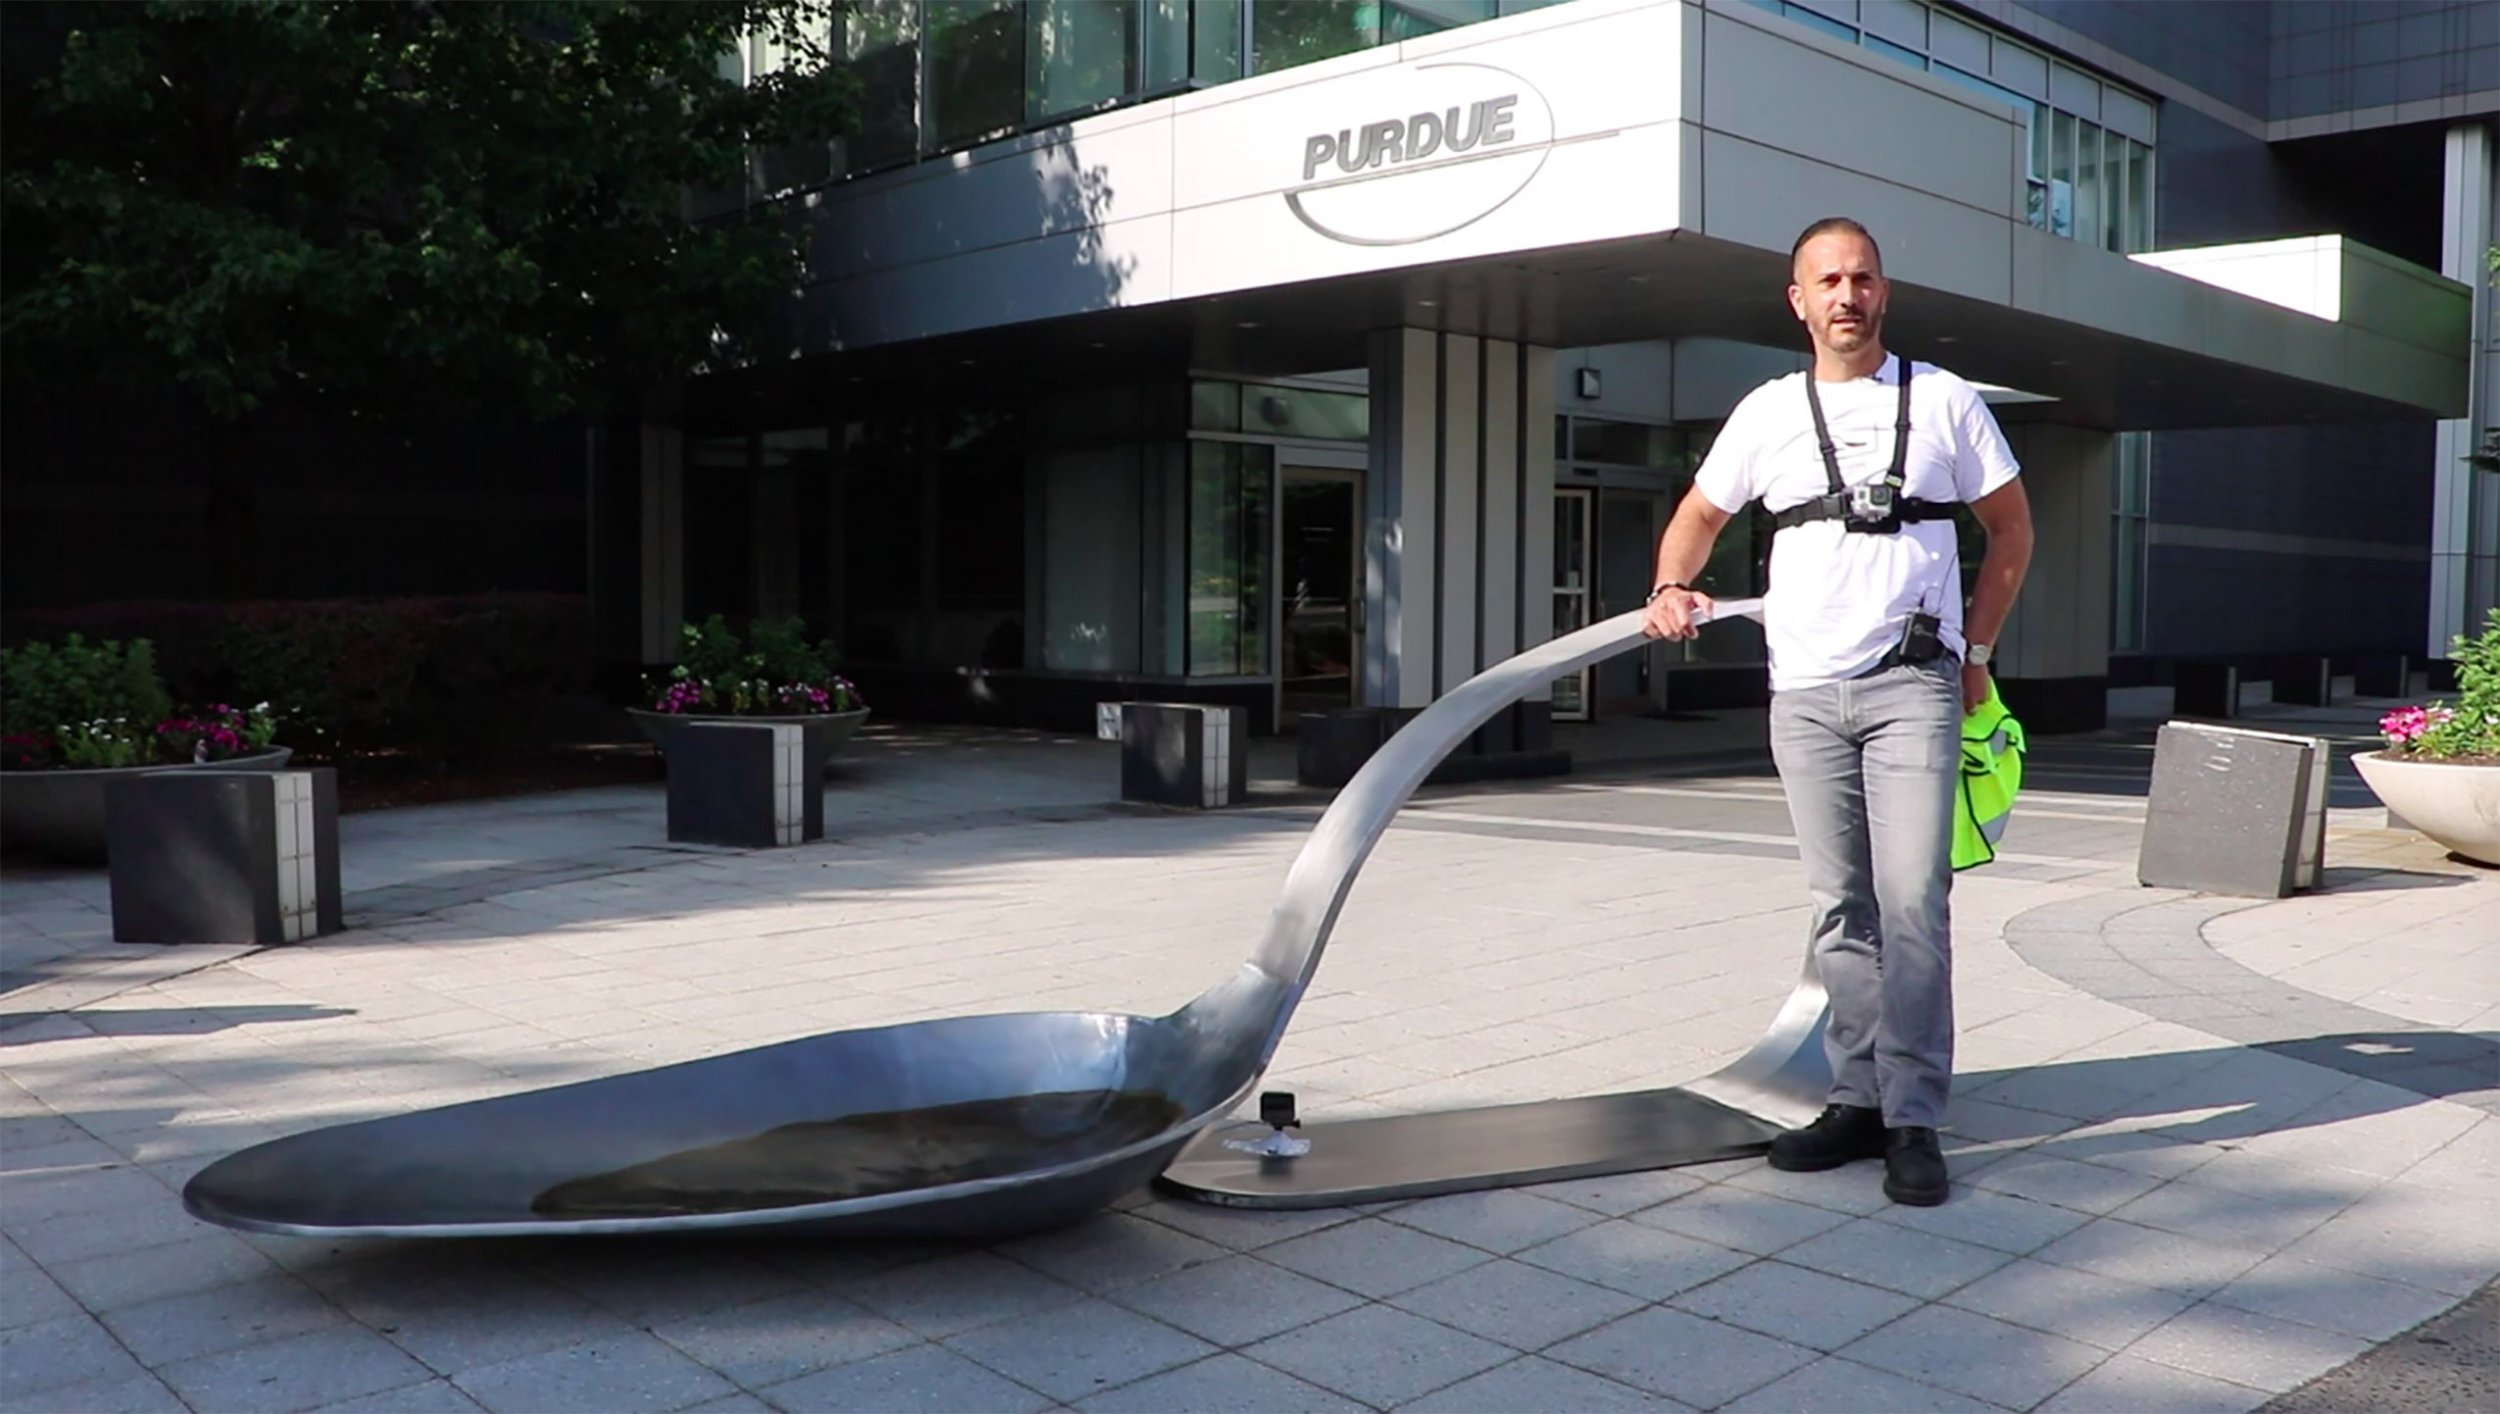 Gallery dealer gets arrested for placing a huge heroin spoon outside an opioid company